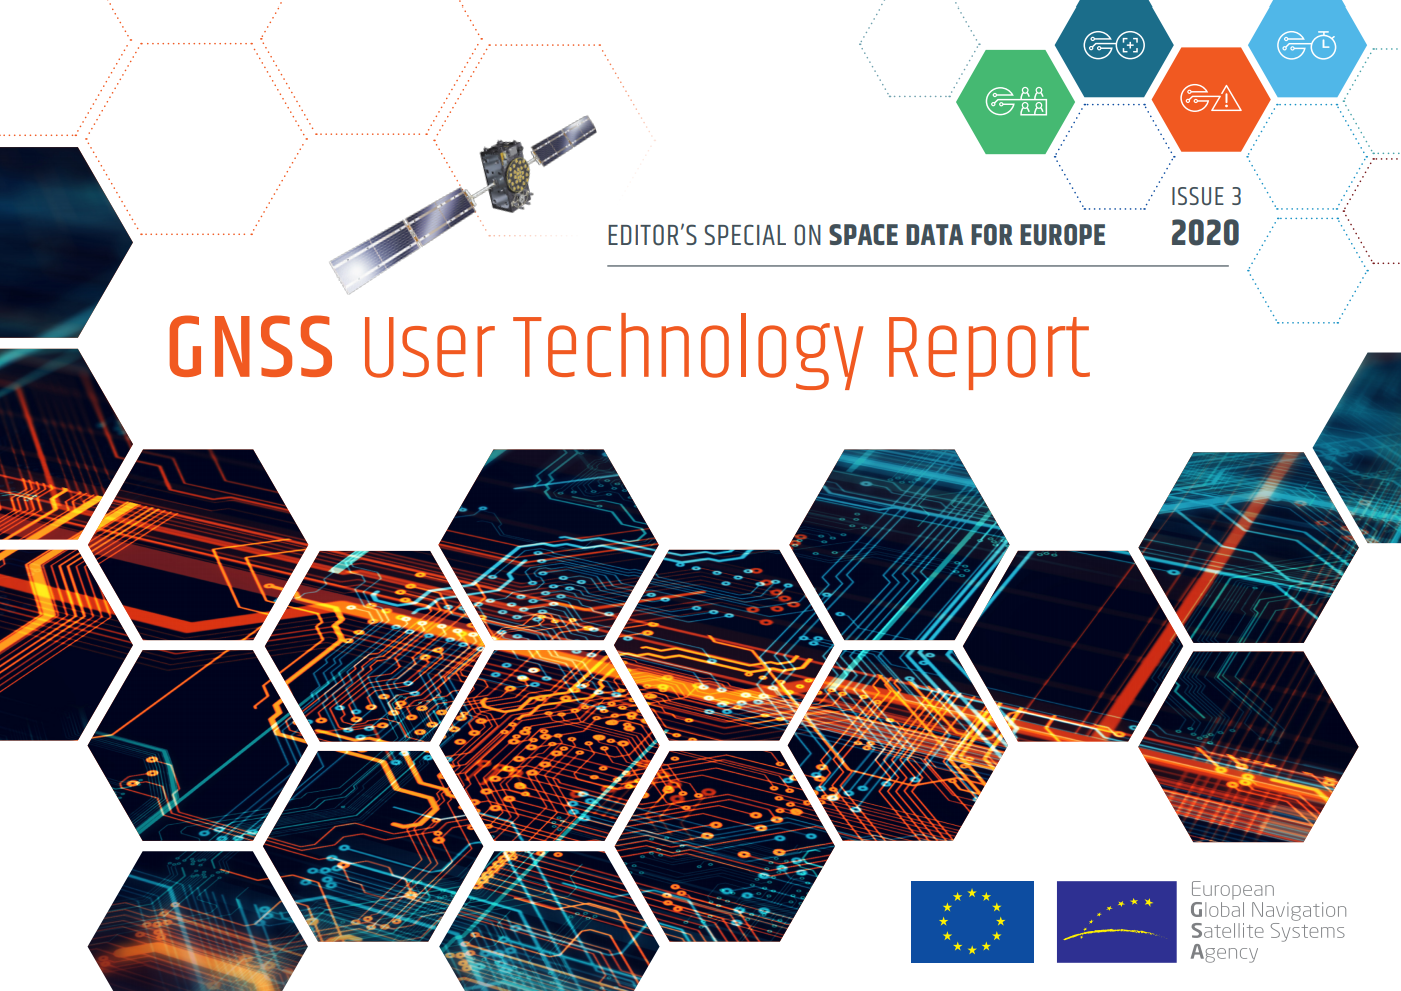 The latest edition of the GNSS User Technology Report is out!